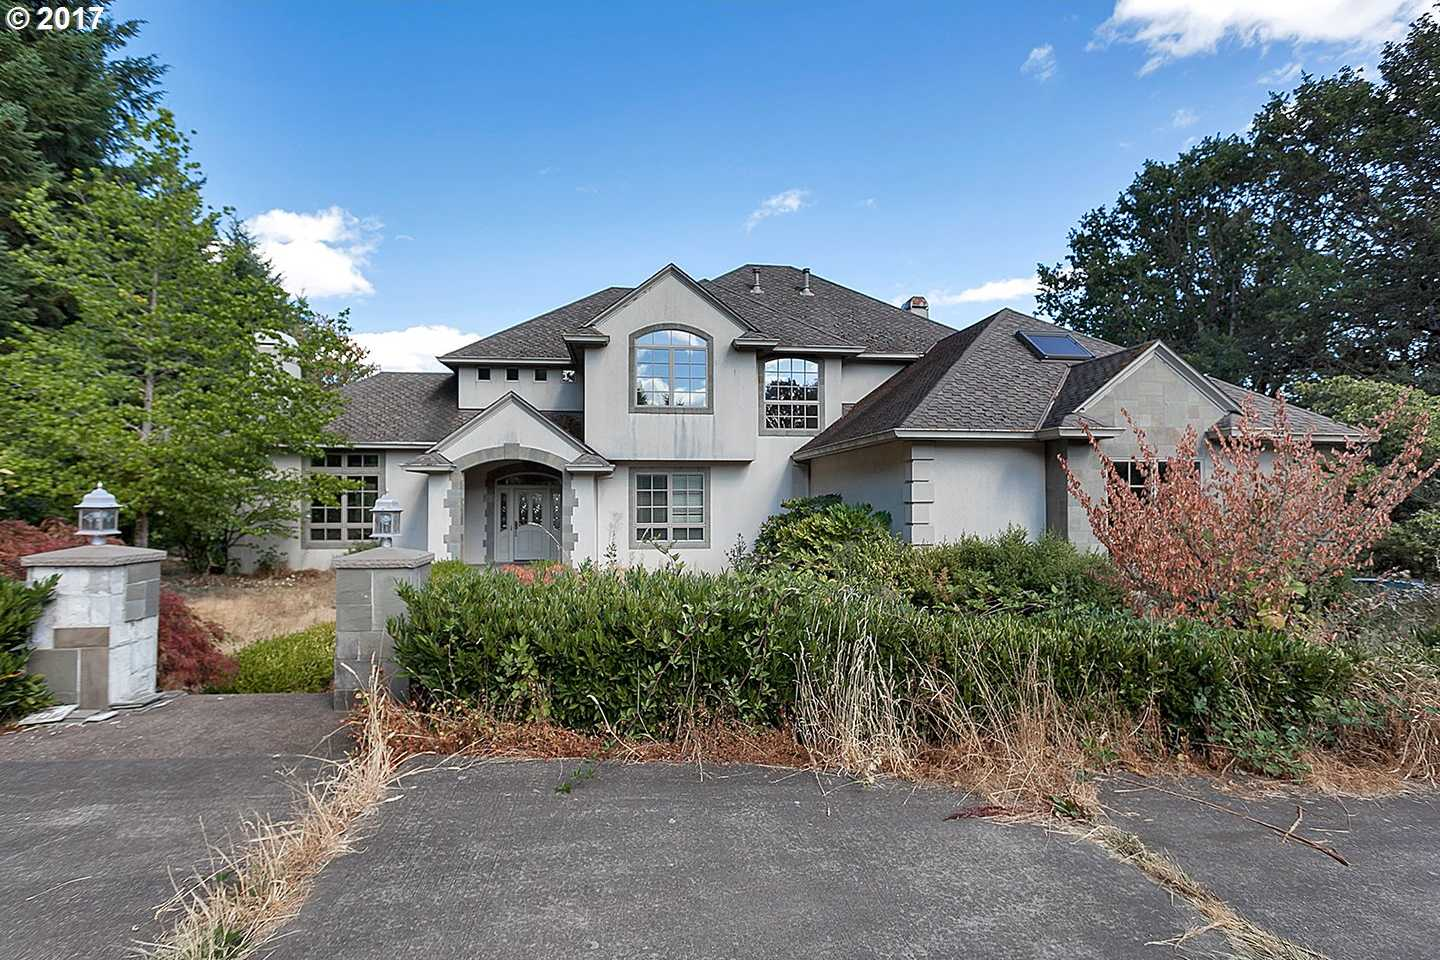 $730,000 - 5Br/6Ba -  for Sale in Parrett Mountain, Wilsonville